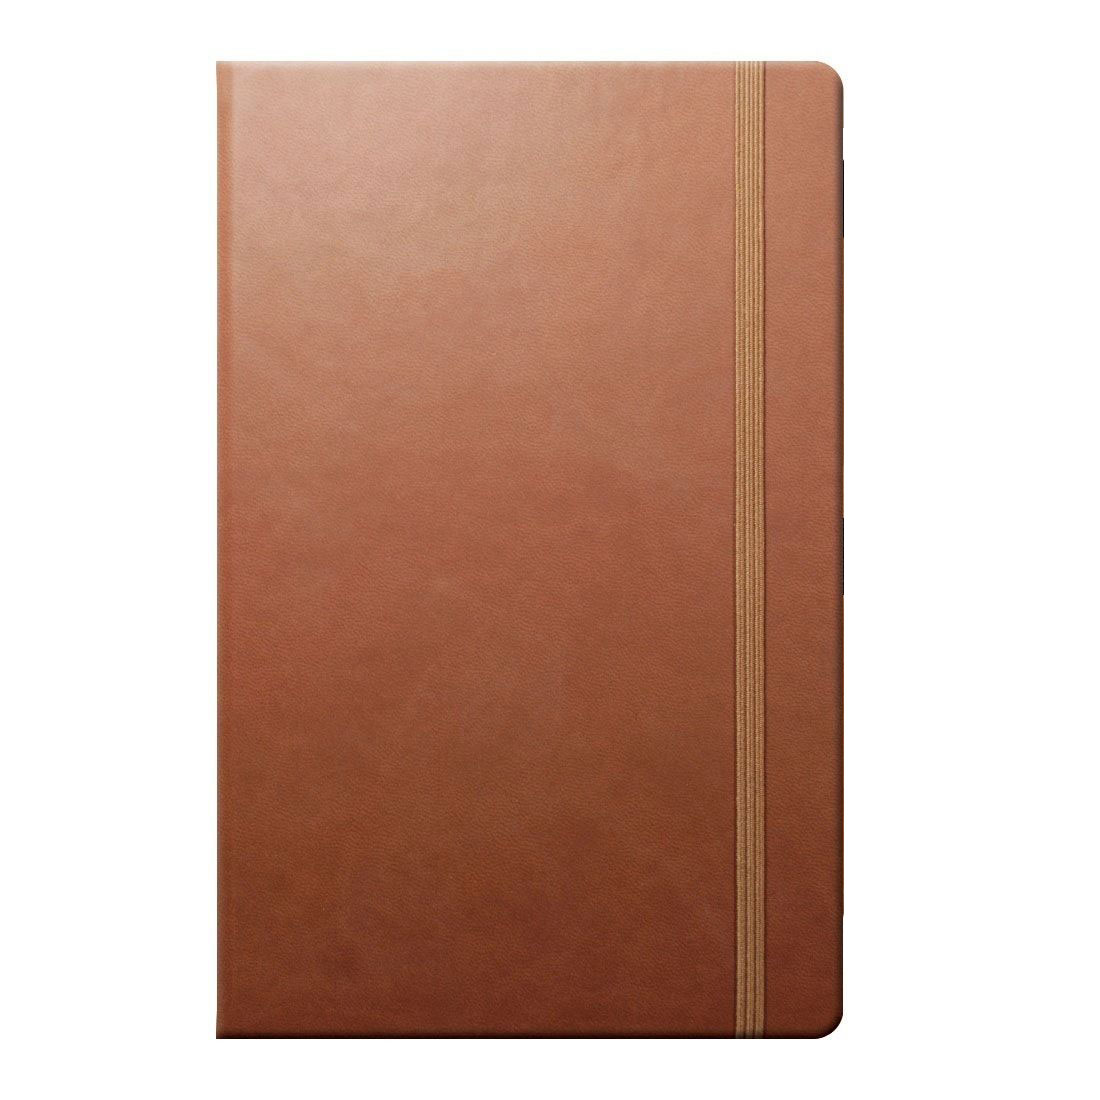 Castelli Notebook Range - Castelli Notebook - Brown